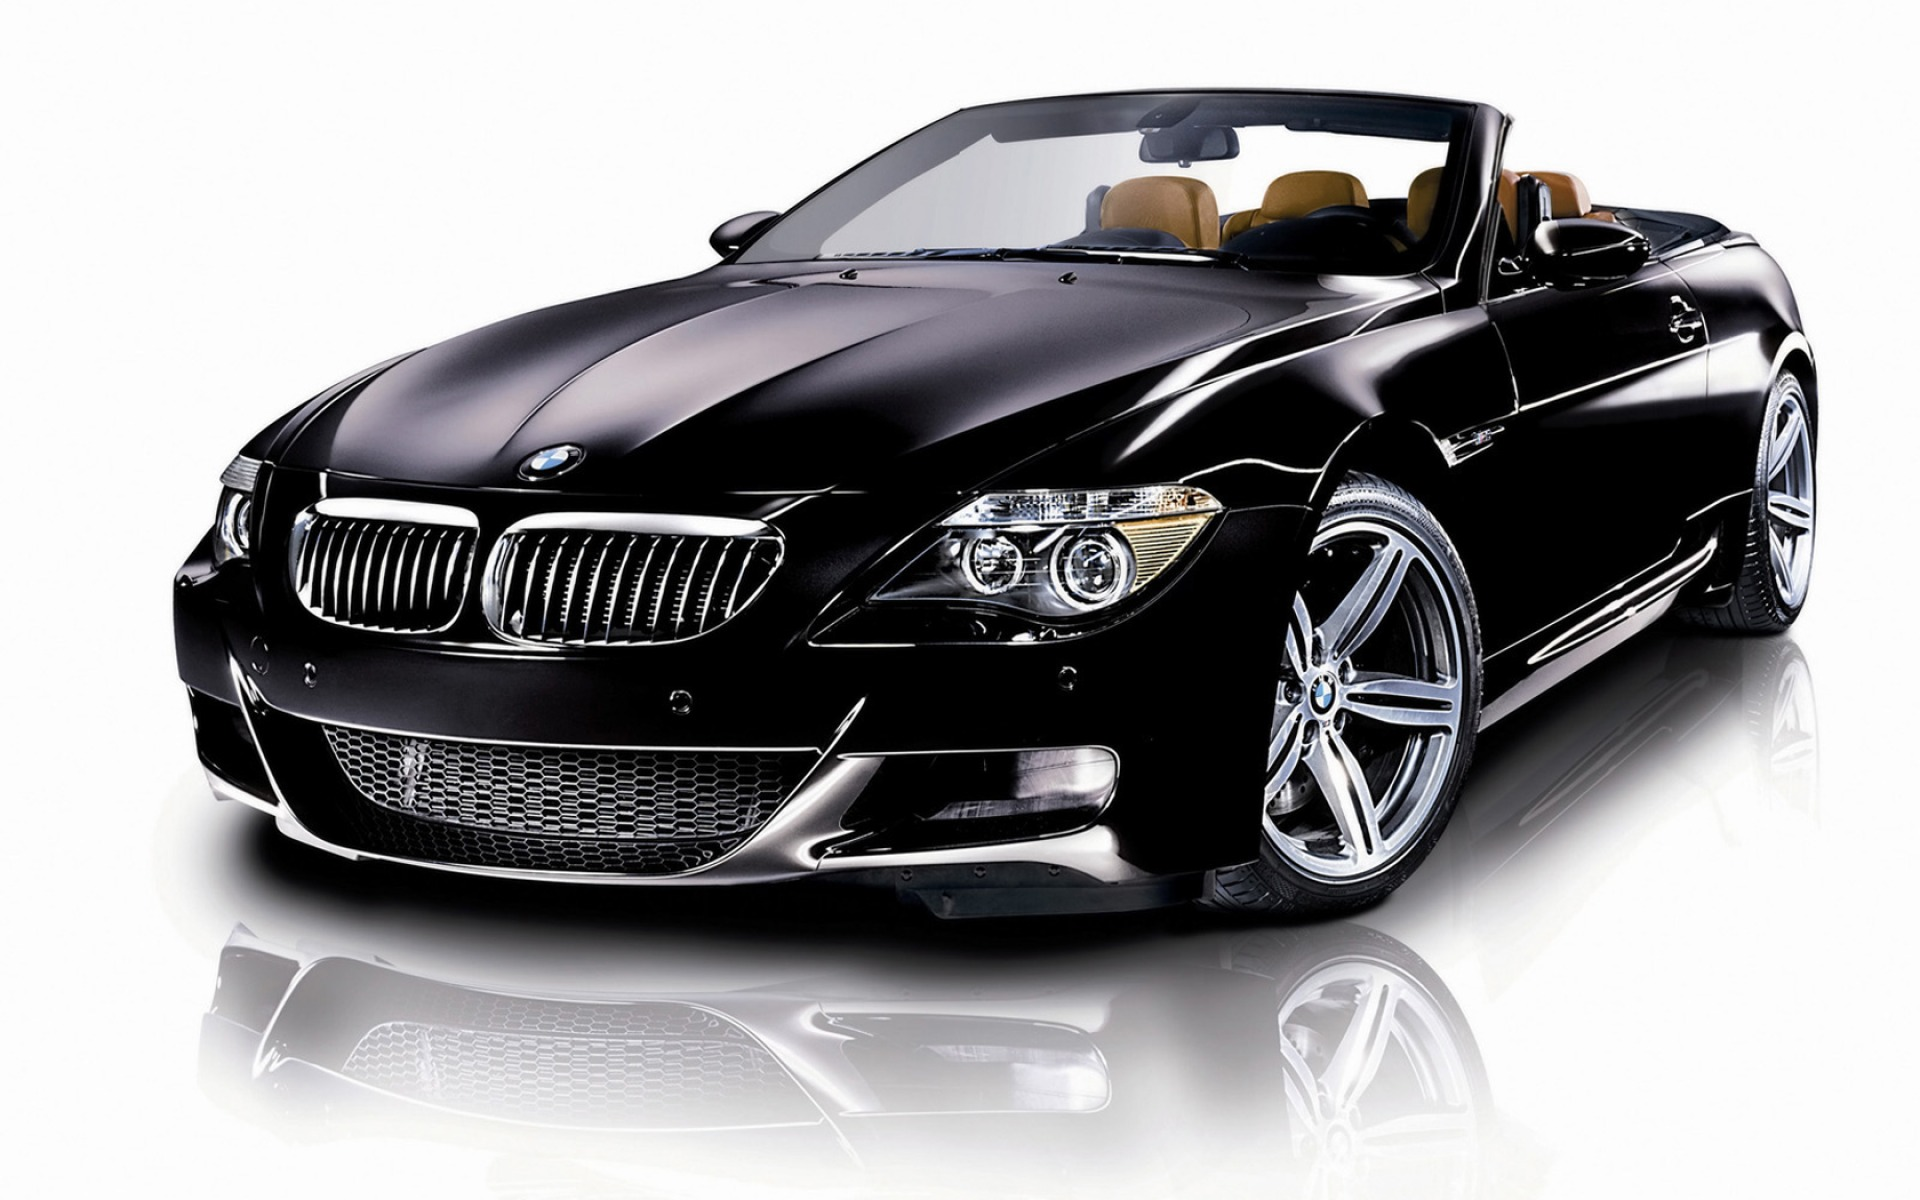 Ultrablogus  Outstanding Bmw Car Wallpaper Wallpapers For Free Download About   With Goodlooking Bmw M Convertible Wallpaper Bmw Cars With Extraordinary  Mustang Interior Also Custom Cutlass Interior In Addition Mk Golf Interior And  Impala Interior As Well As Spitfire Interior Additionally  Monte Carlo Interior From Allfreedownloadcom With Ultrablogus  Goodlooking Bmw Car Wallpaper Wallpapers For Free Download About   With Extraordinary Bmw M Convertible Wallpaper Bmw Cars And Outstanding  Mustang Interior Also Custom Cutlass Interior In Addition Mk Golf Interior From Allfreedownloadcom